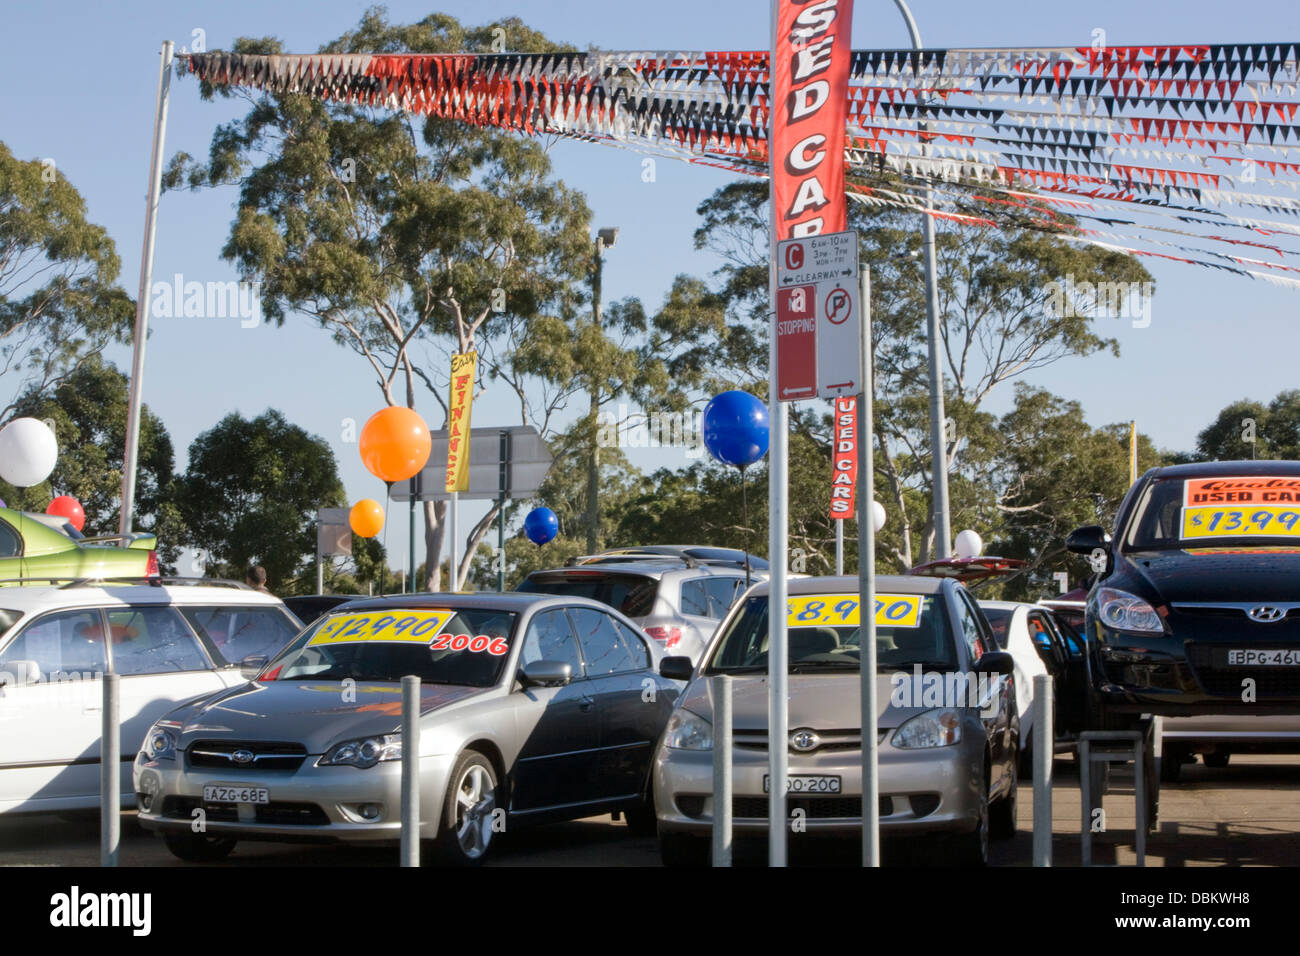 Used Cars For Sale At A Car Lot In Sydney Australia Stock